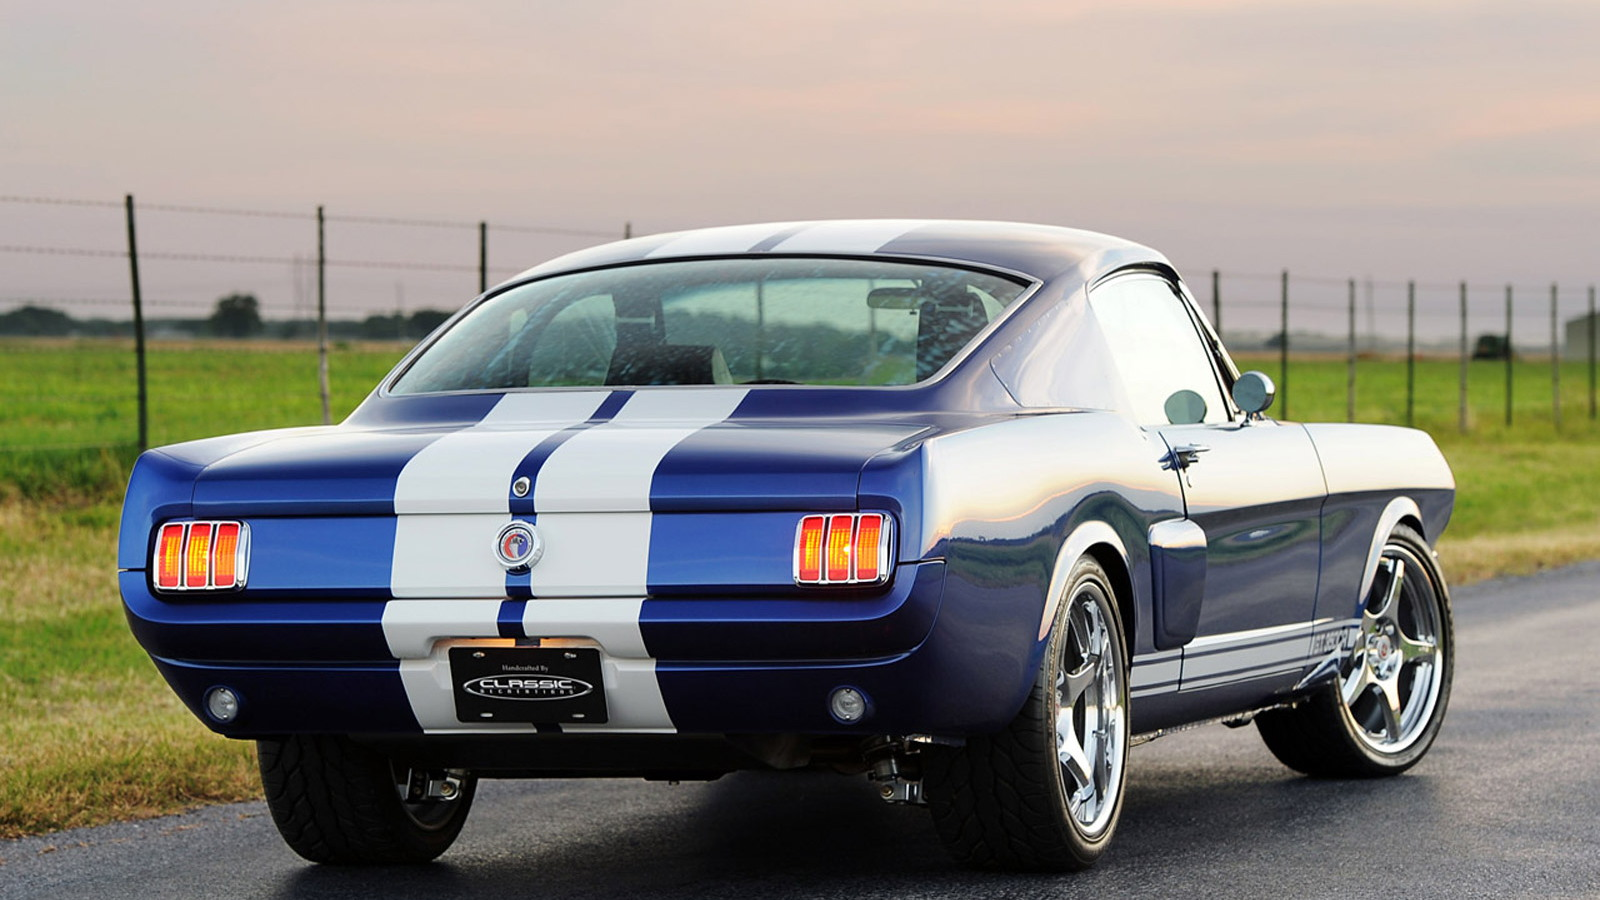 Classic Recreationss 1966 Mustang Fastback Shelby GT350CR